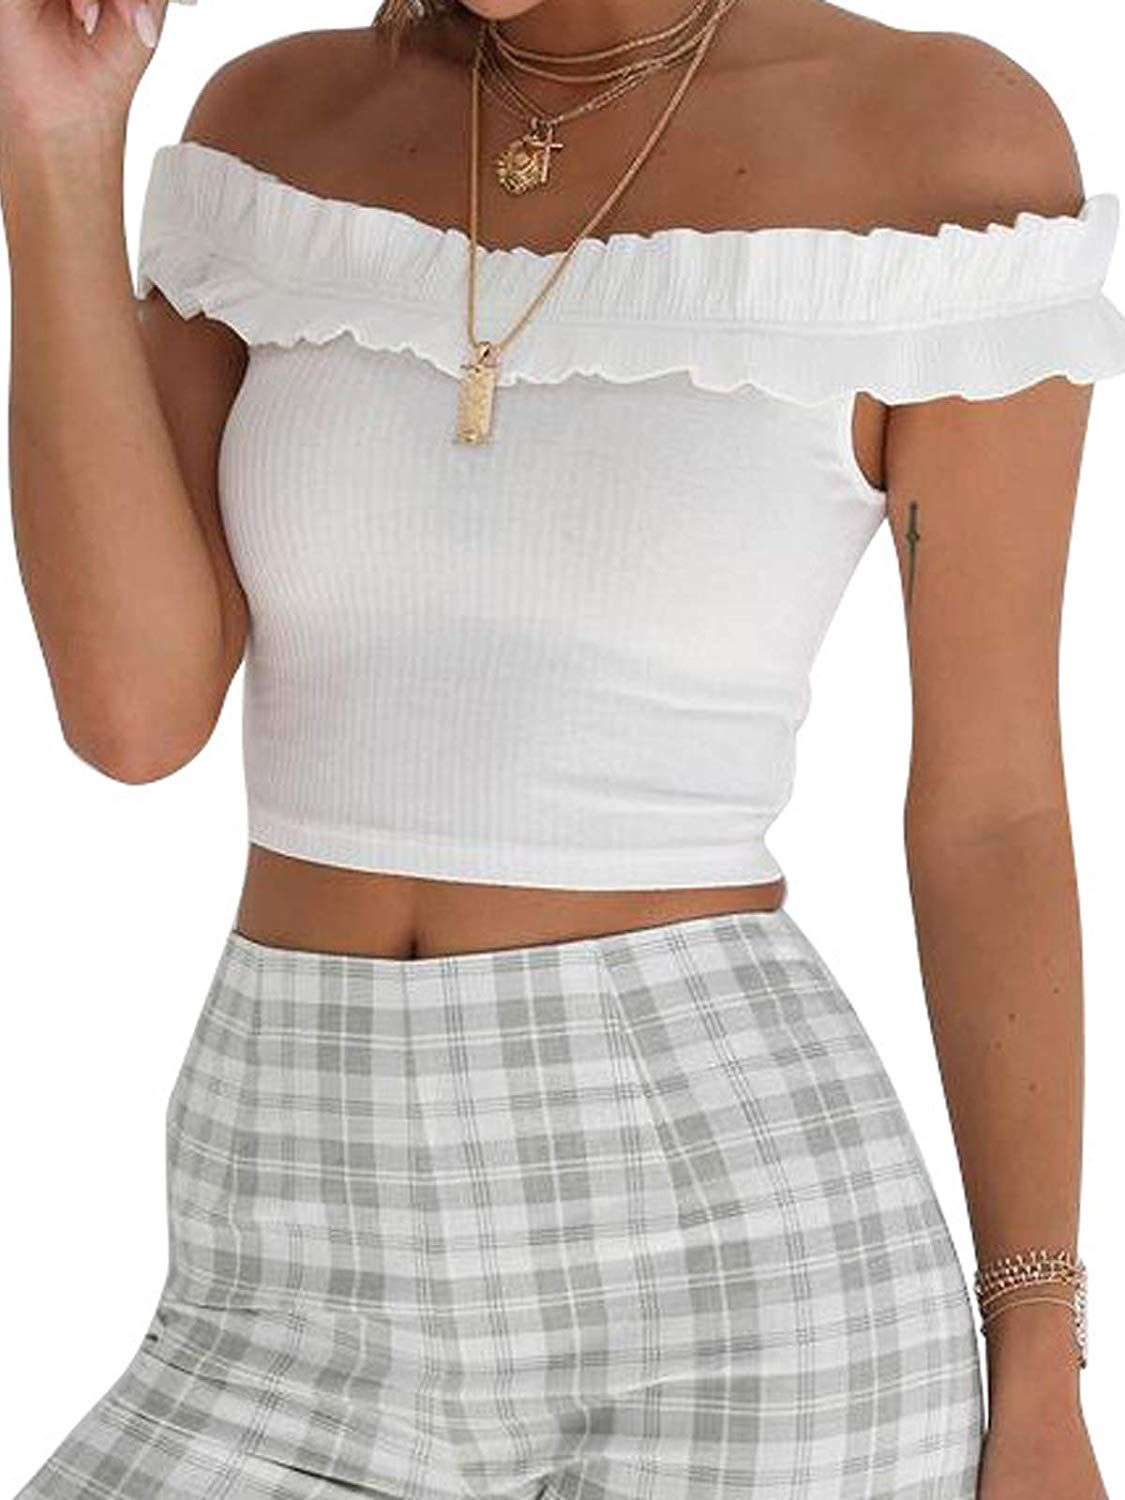 bda6882cb57 $12.88 Govc Women's Off Shoulder Crop Tops Sexy Short Sleeve Strapless  Ruffle Smock Slim Tees at Amazon Women's Clothing store: